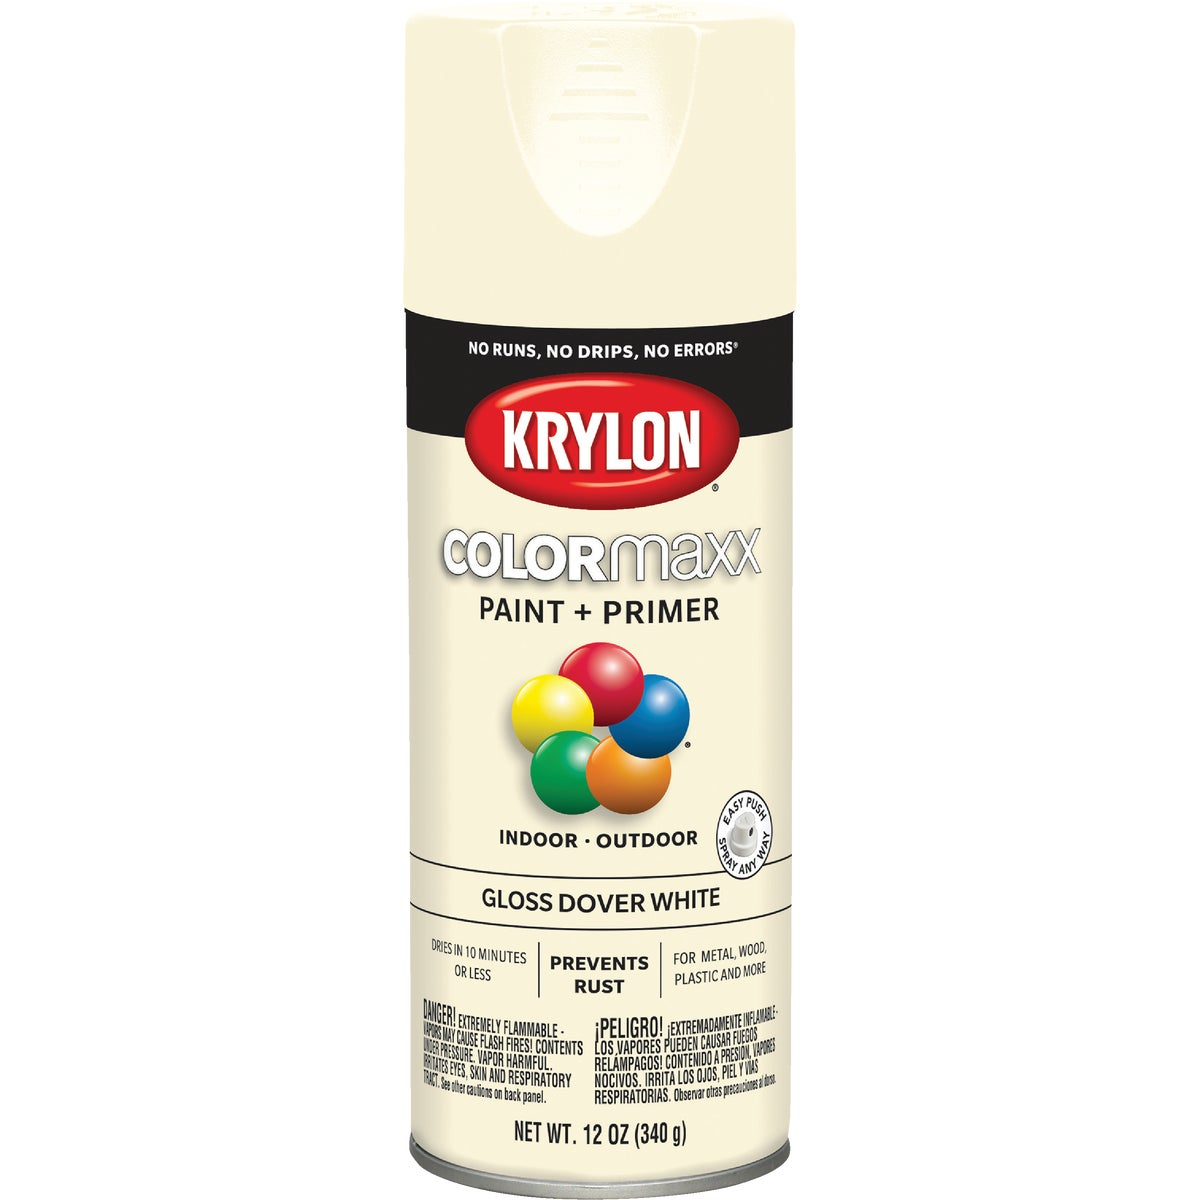 GLS DOVR WHT SPRAY PAINT - 53555 by Krylon/consumer Div